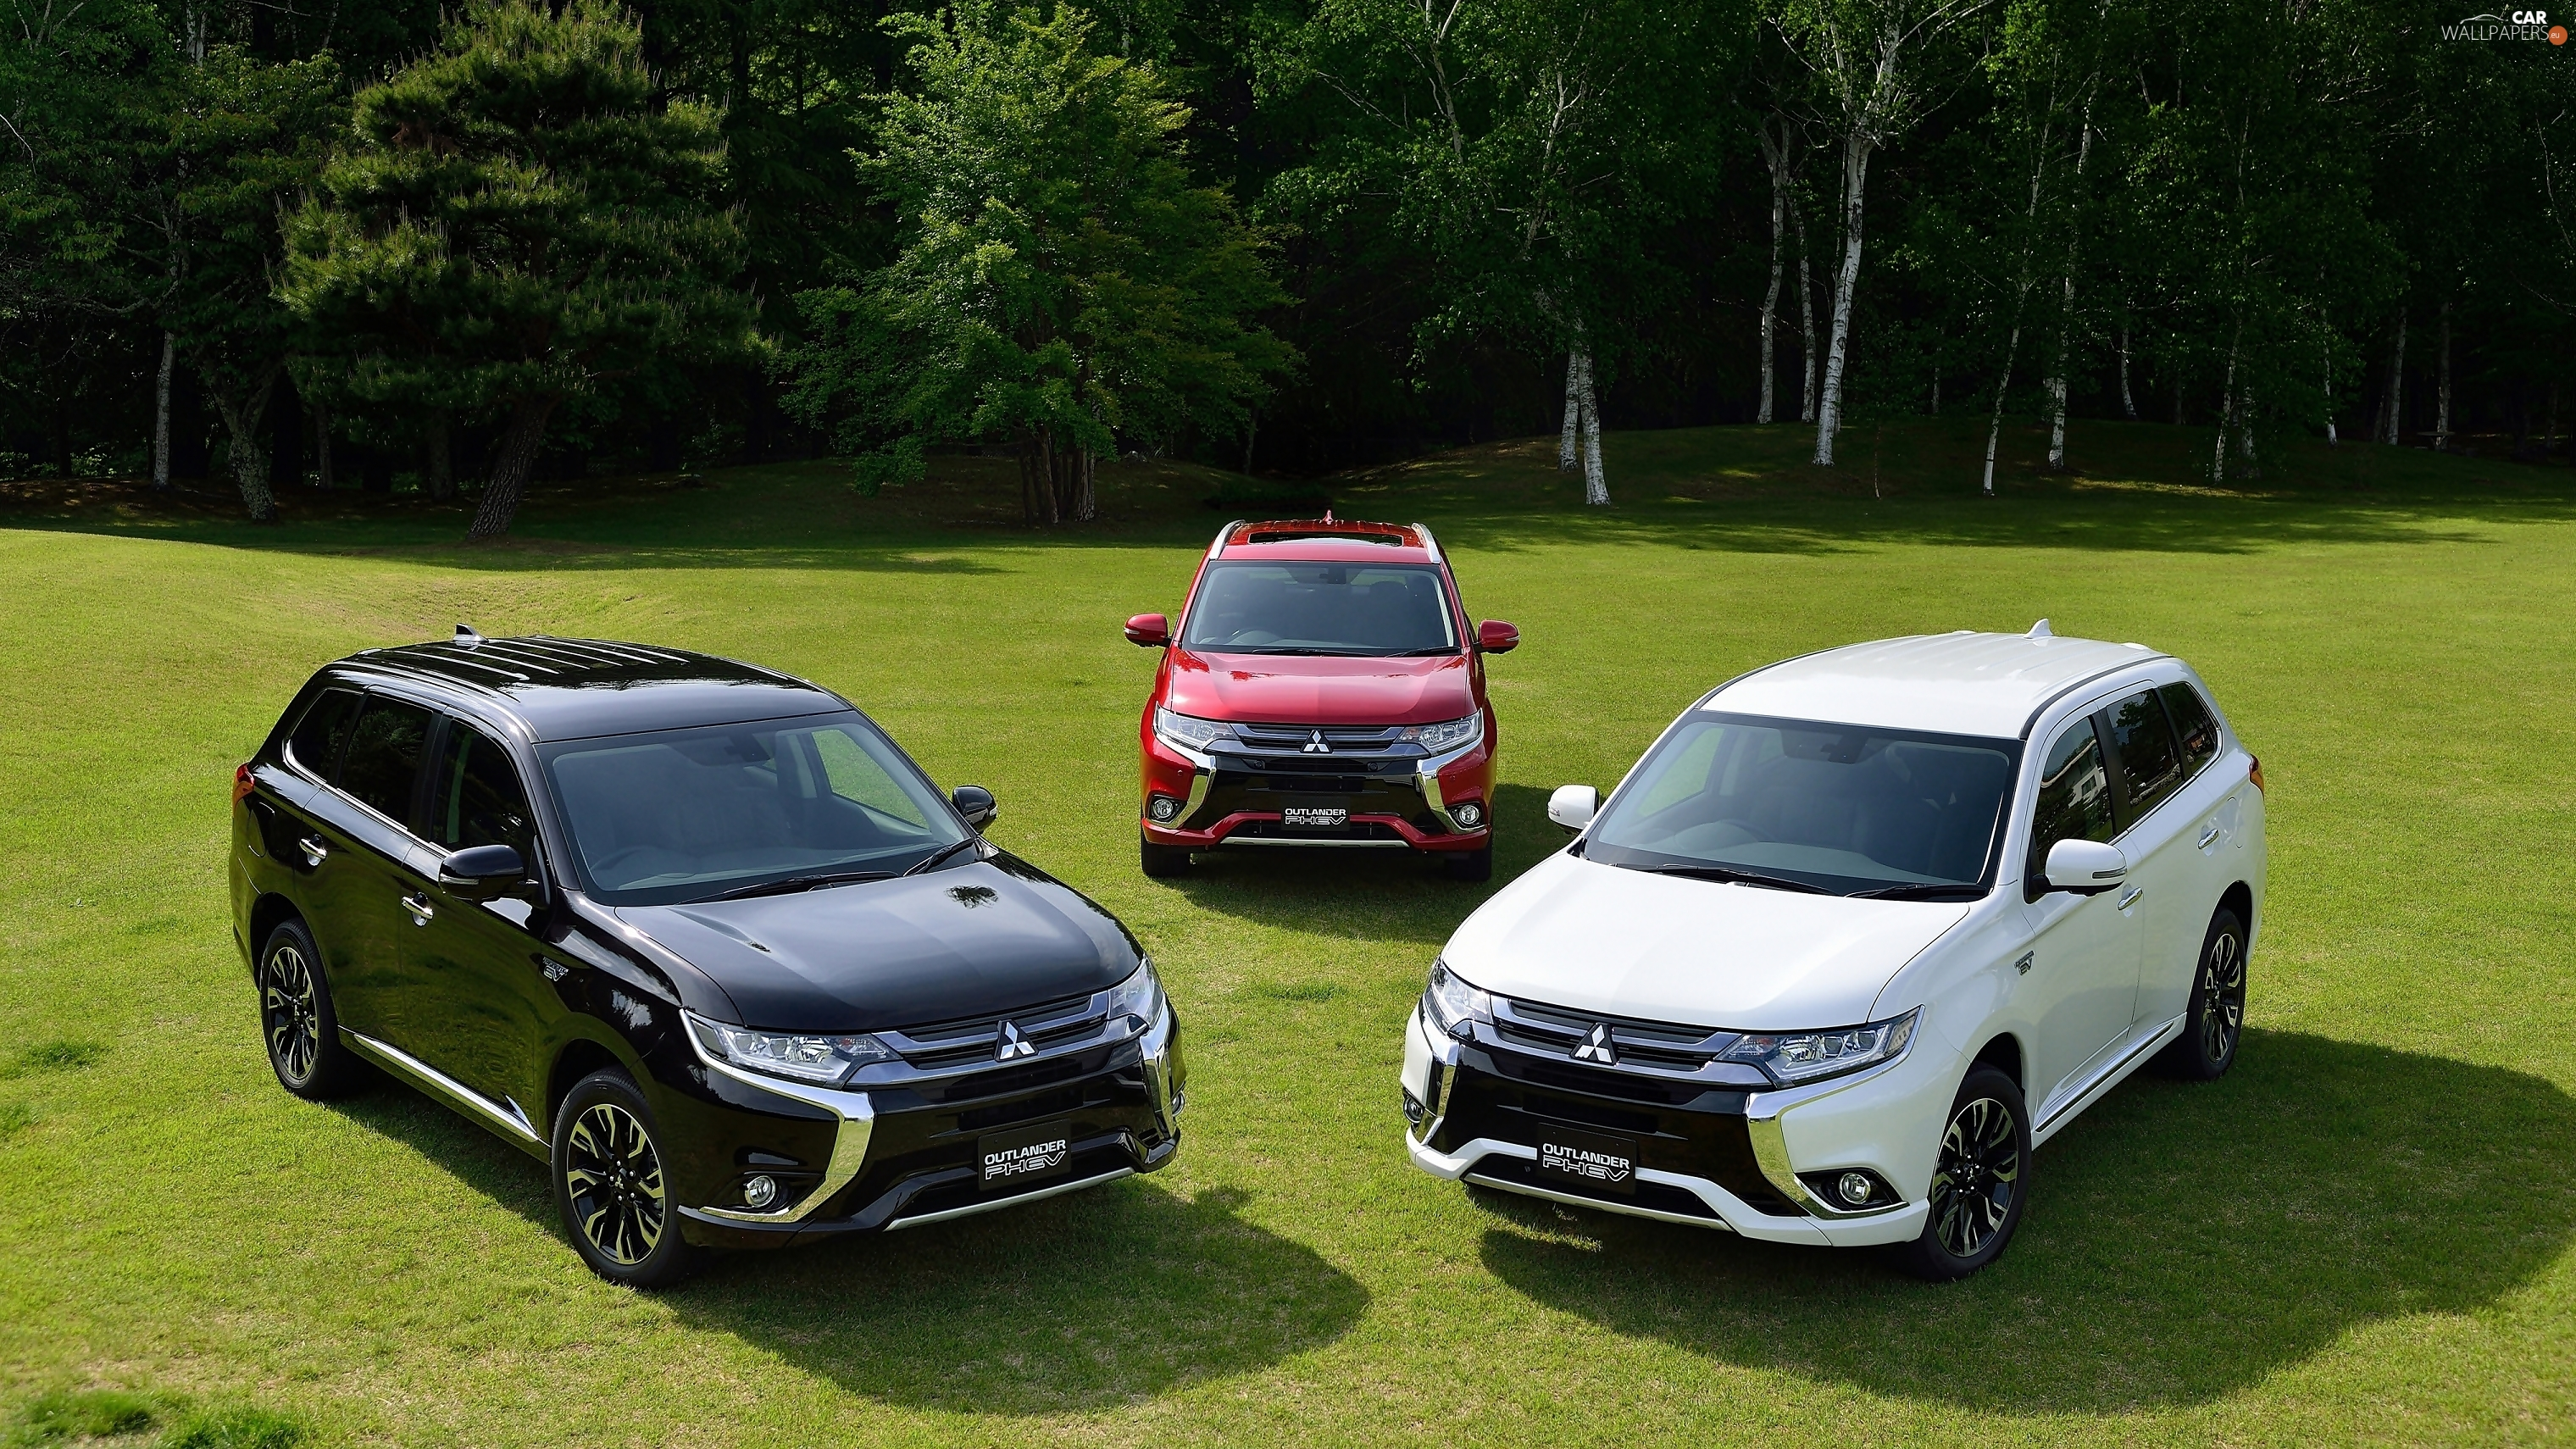 Meadow, 2016, Three, forest, Mitsubishi Outlander PHEV